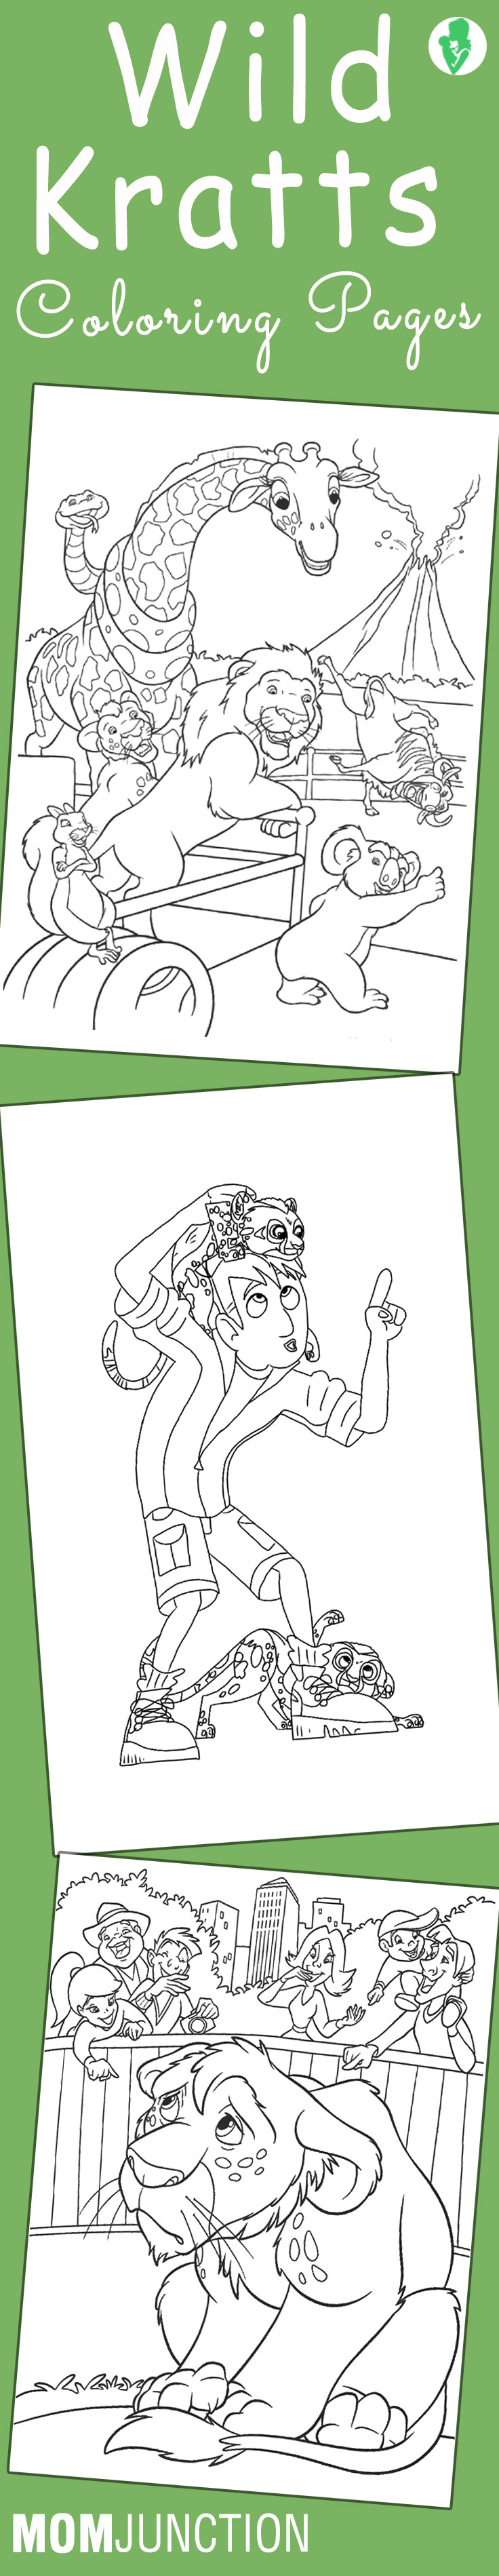 Wild Kratts Coloring Pages - Free Printable | Wild kratts